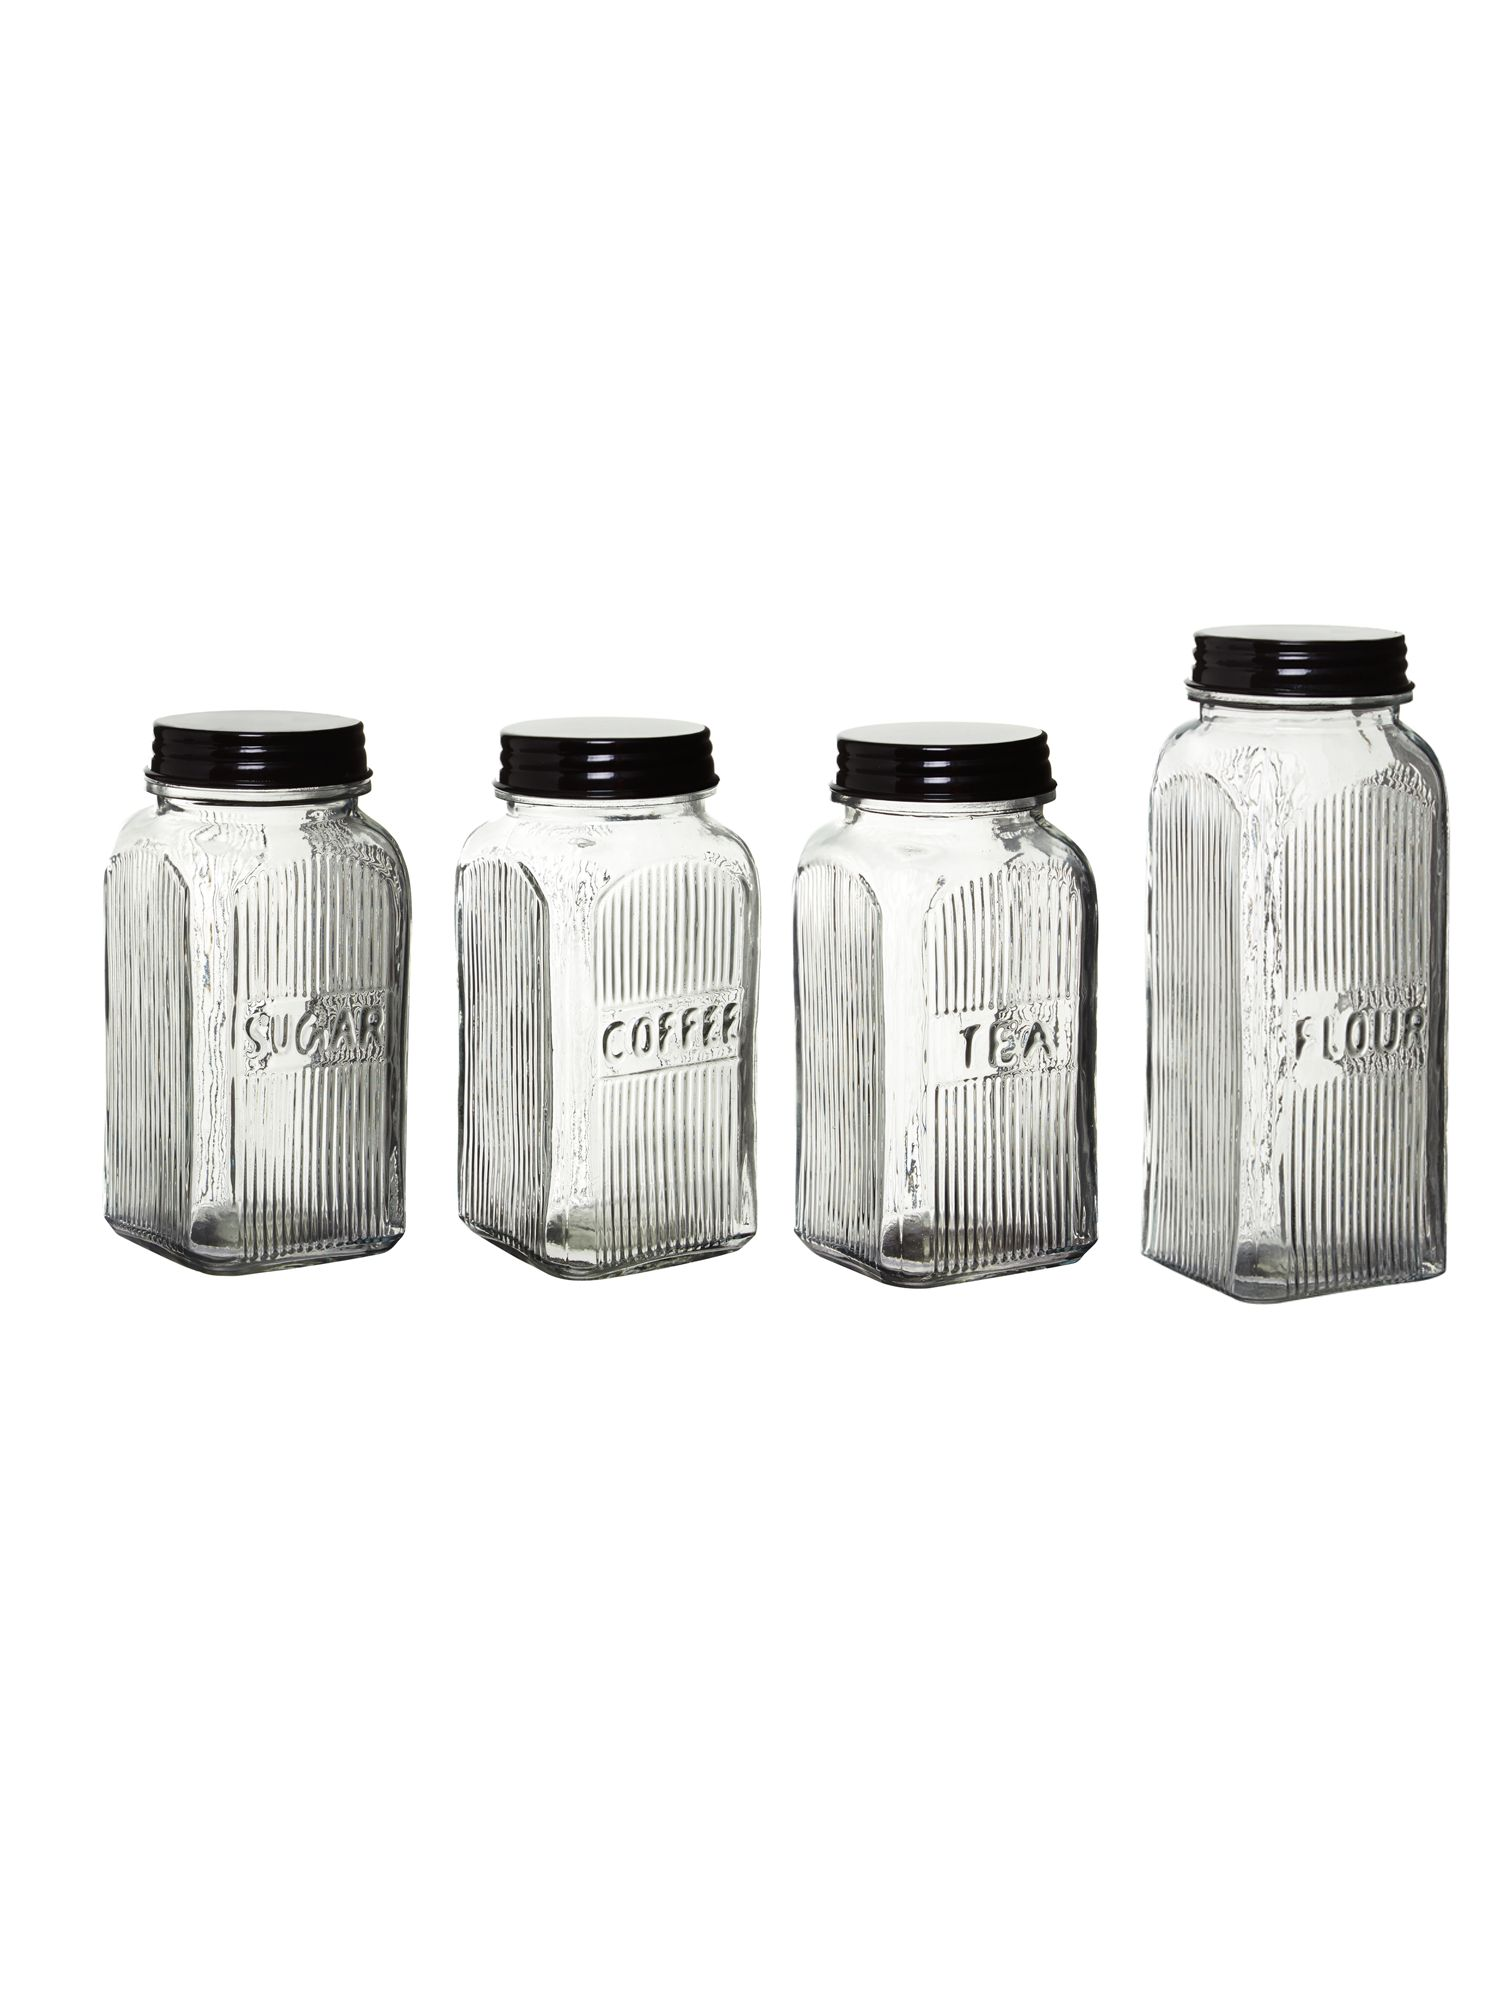 Restoration glass jars